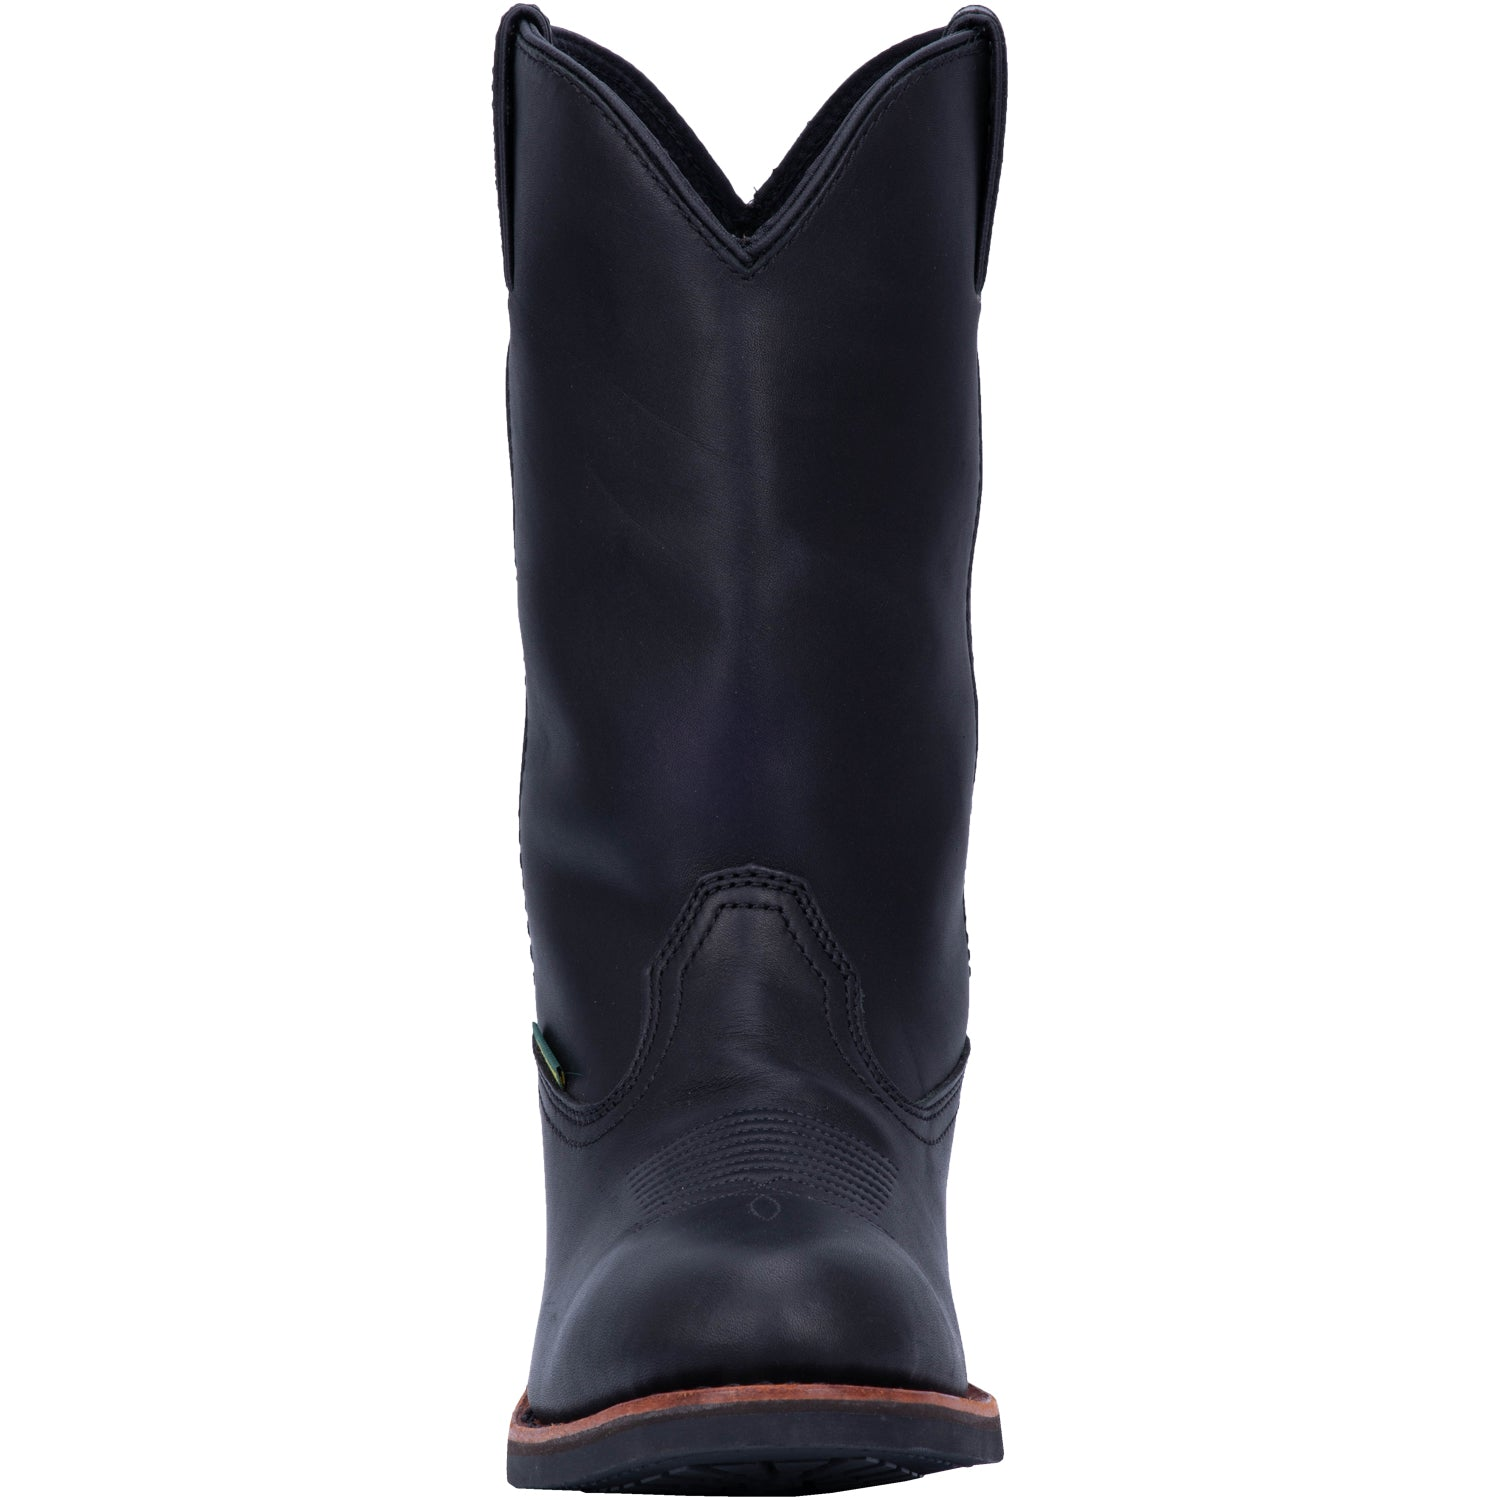 ALBUQUERQUE WATERPROOF LEATHER BOOT 4248832933930